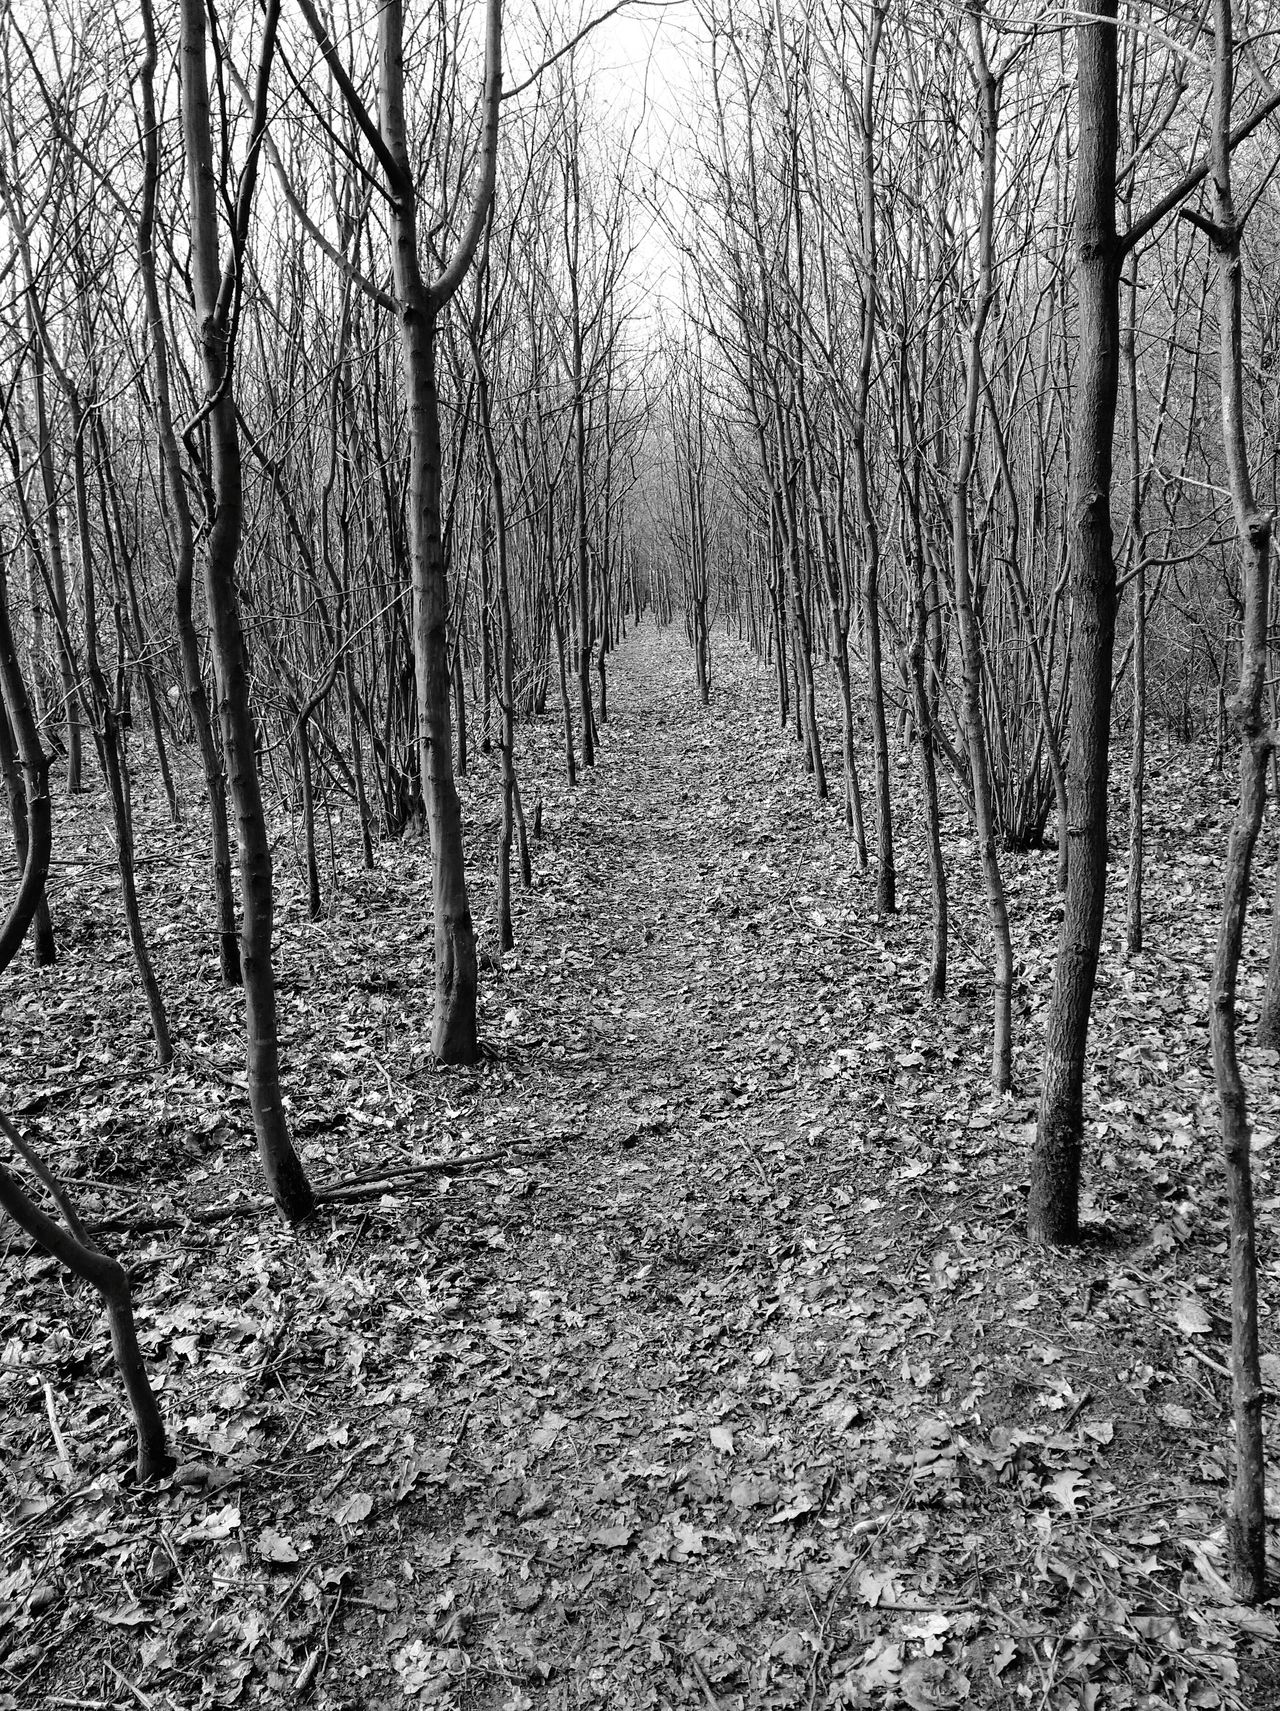 Tree Nature Beauty In Nature On My Walk Today We Are Eyeem, We Are Photography We Are Photography, We Are EyeEm Melancholic Landscapes Landscape Tree Blackandwhitephotography Blackandwhite Bnw Photography Spooky Trees